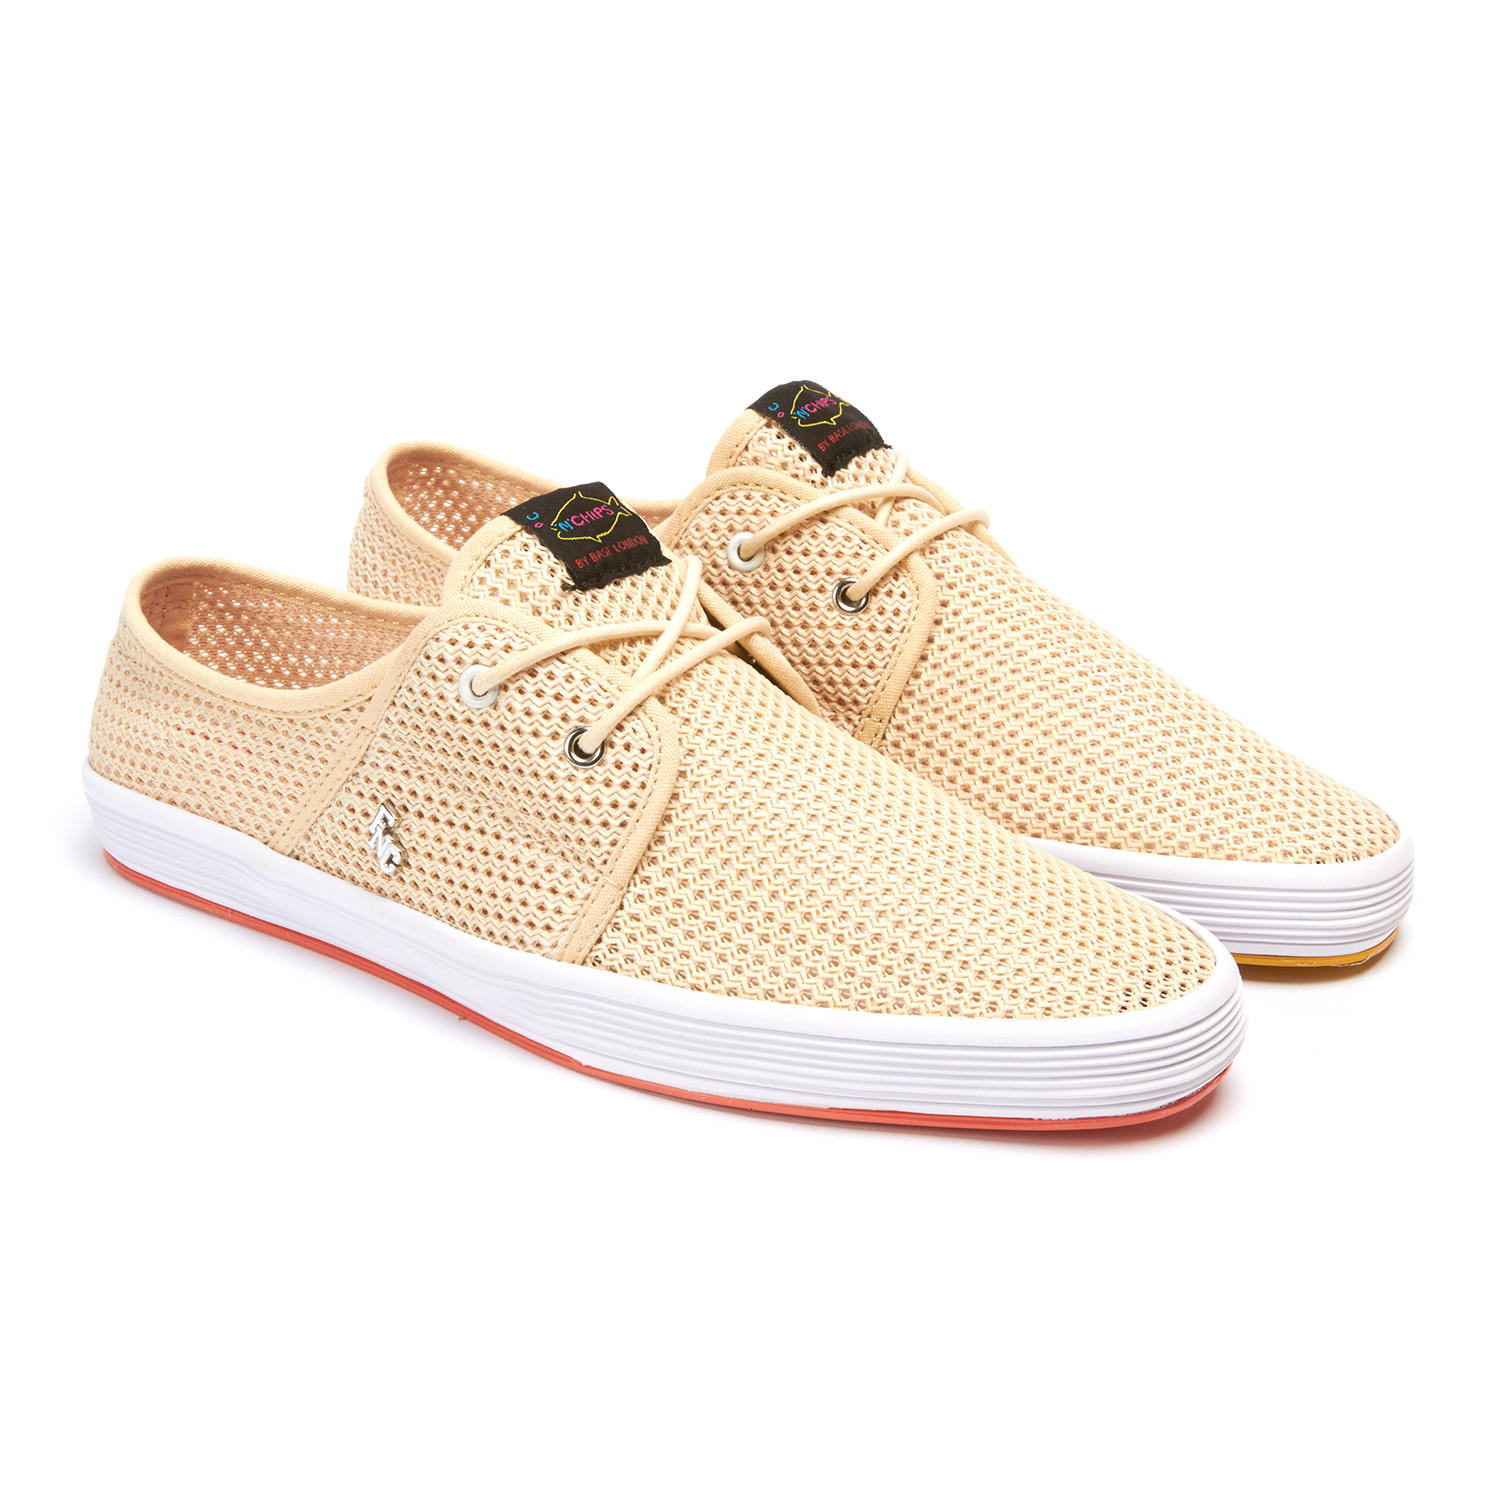 Spam 2 sneaker natural euro 40 fish n chips for Fish n chips shoes